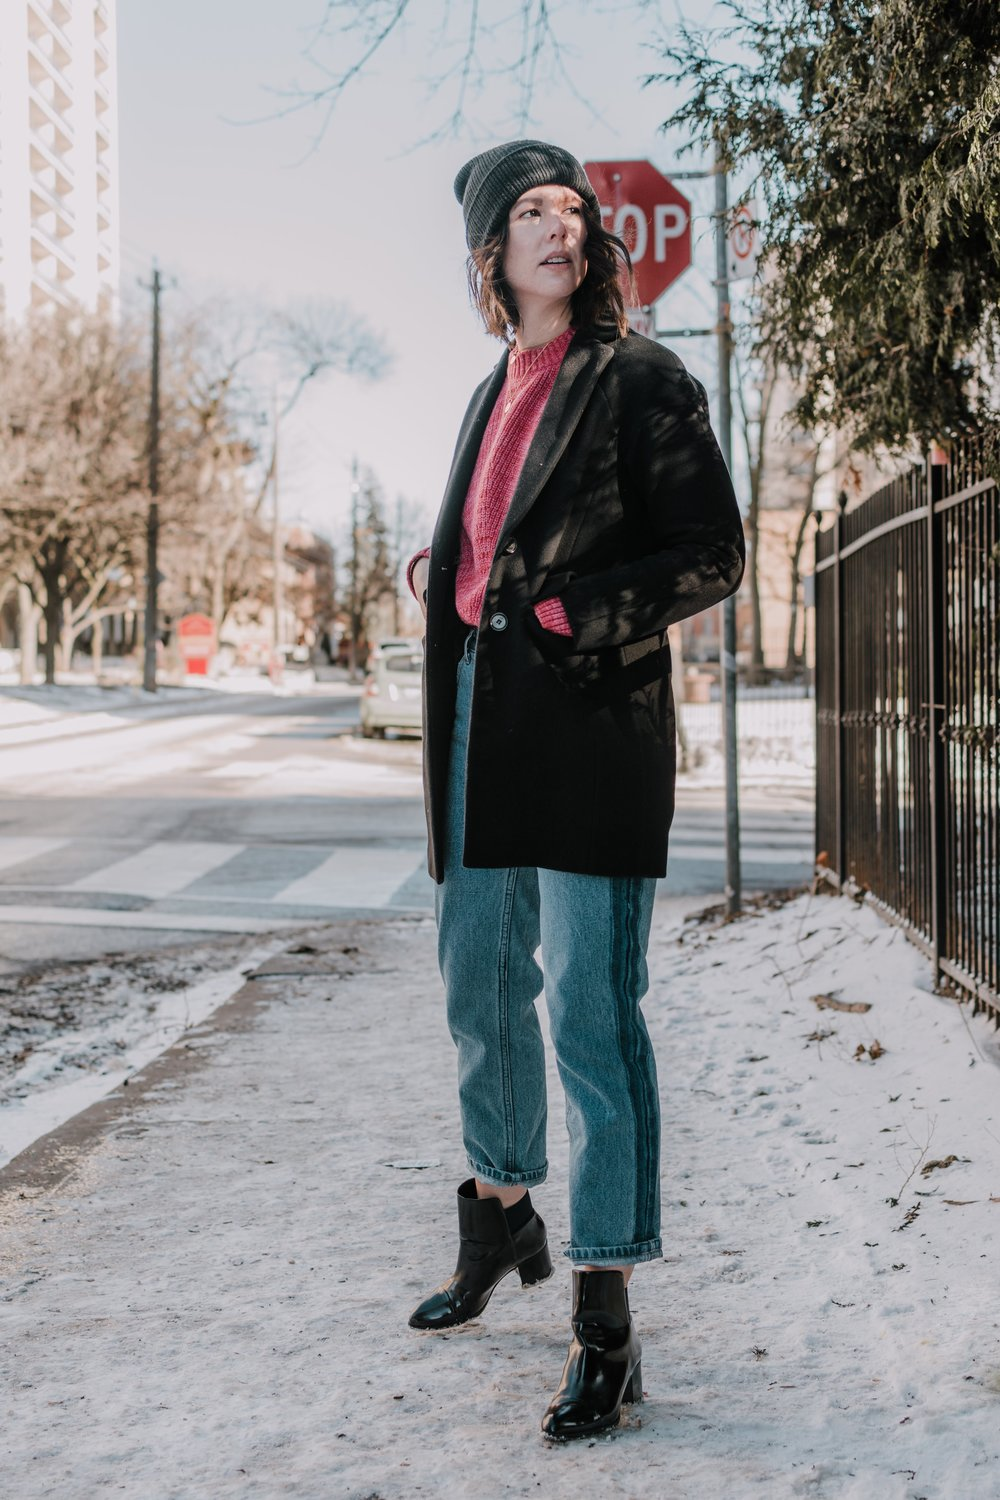 Ribbed-Cotton Crewneck Sweater in Carmine Heather  Frank and Oak Patti Straight-Leg Jean in Medium Indigo style apotheca toronto fashion toronto style street style blogger